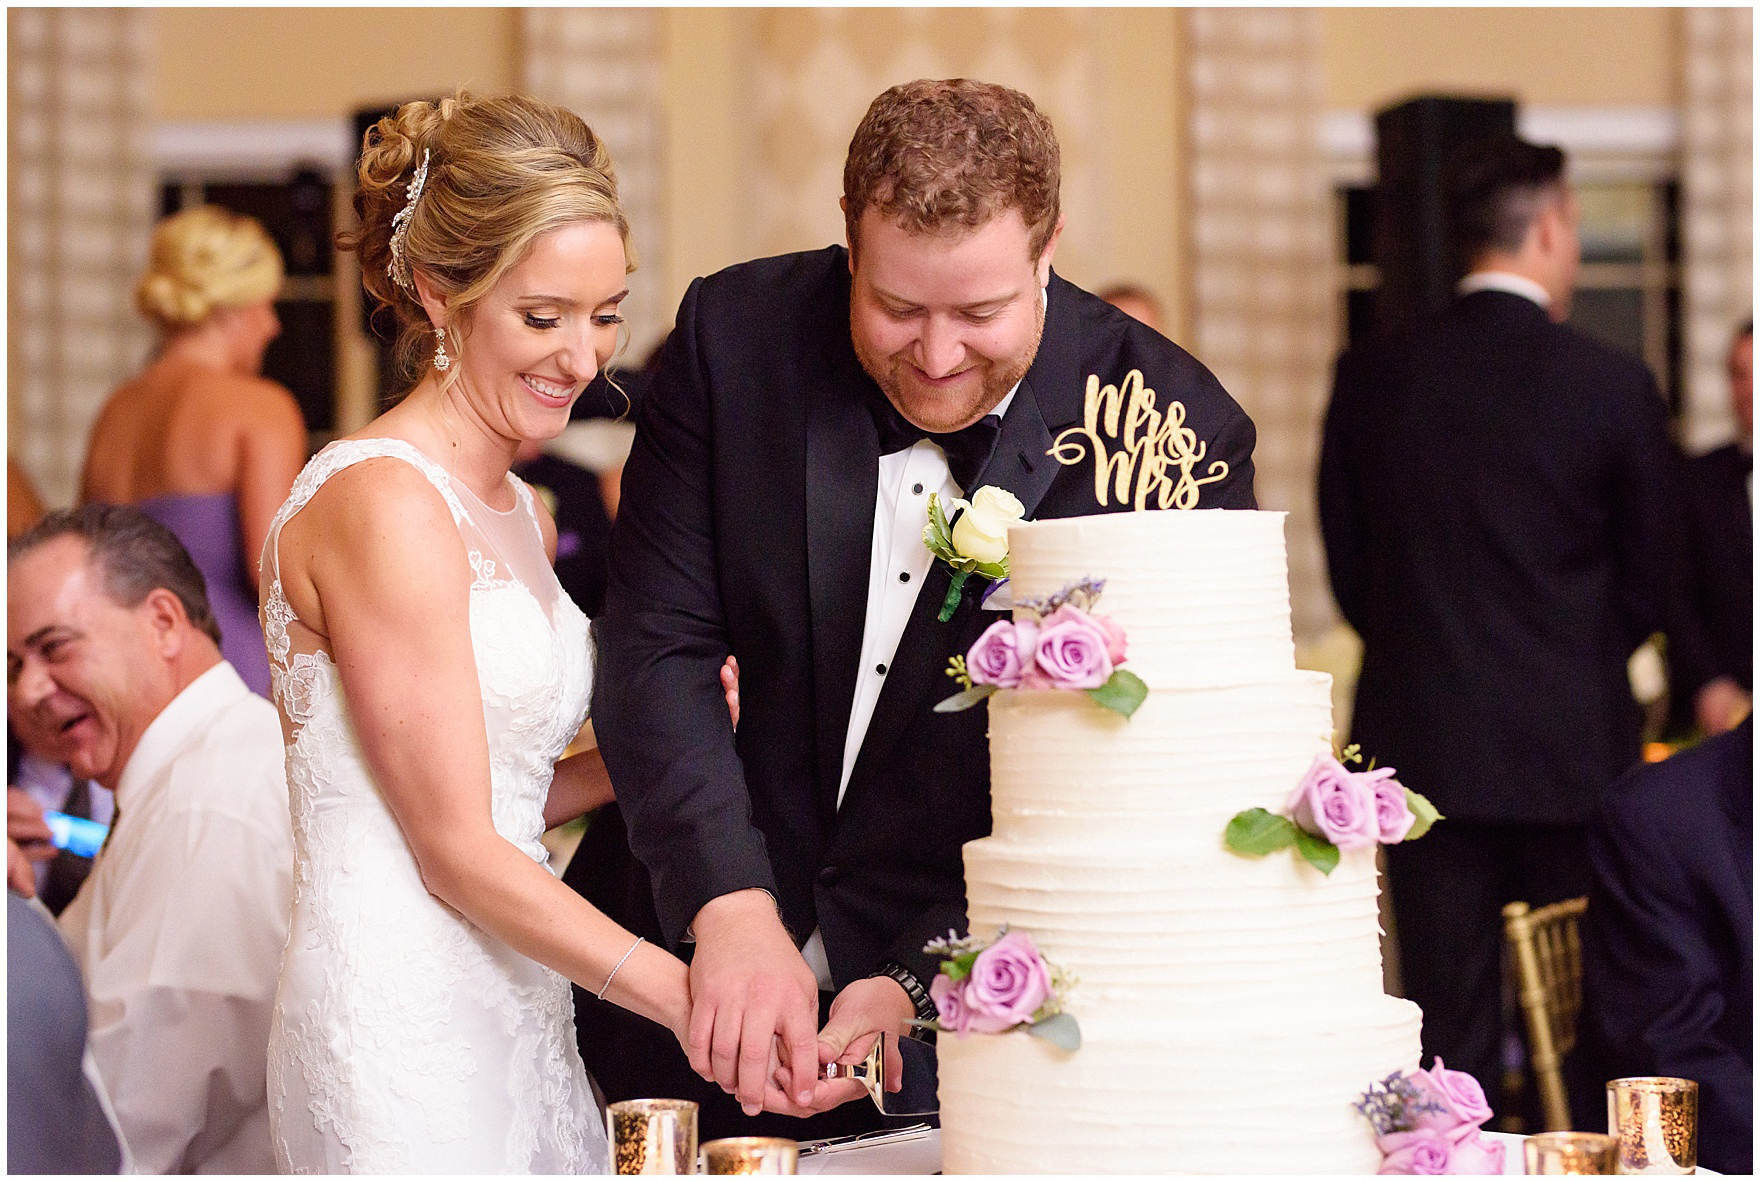 The bride and groom cut their cake during a Glen Club Glenview Illinois wedding.